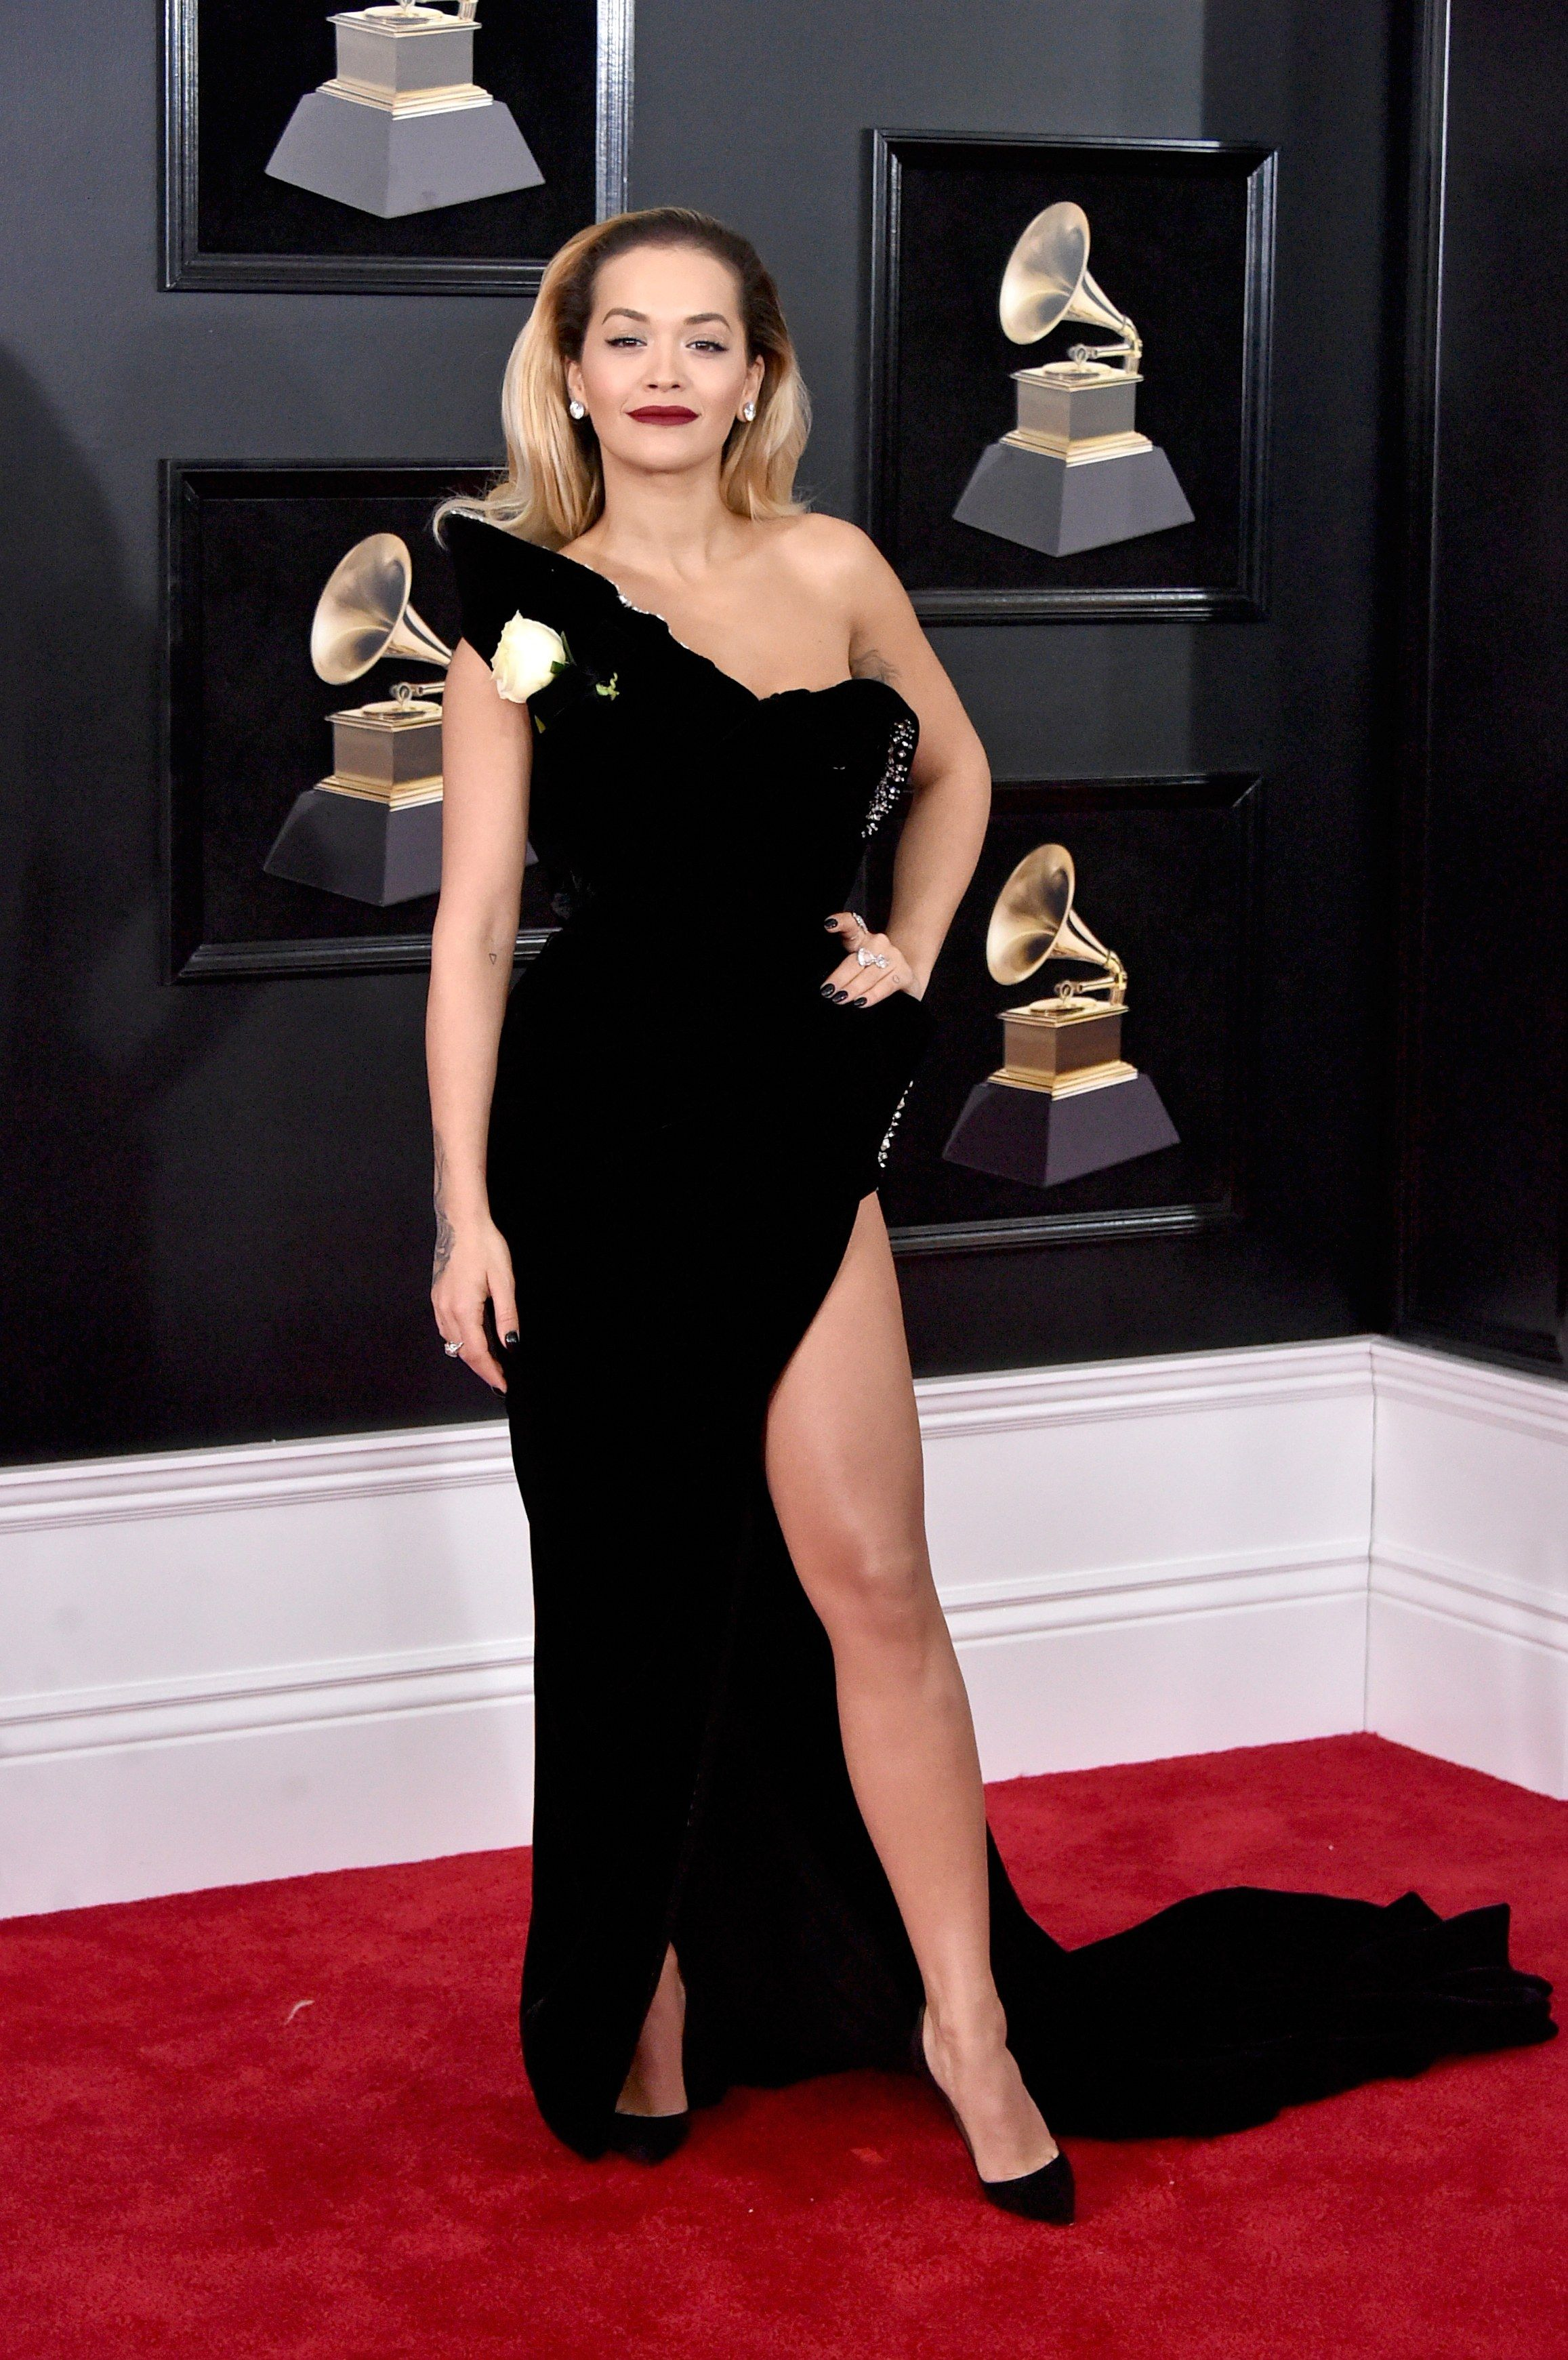 Grammy Awards 2018 Fashion Live From The Red Carpet In